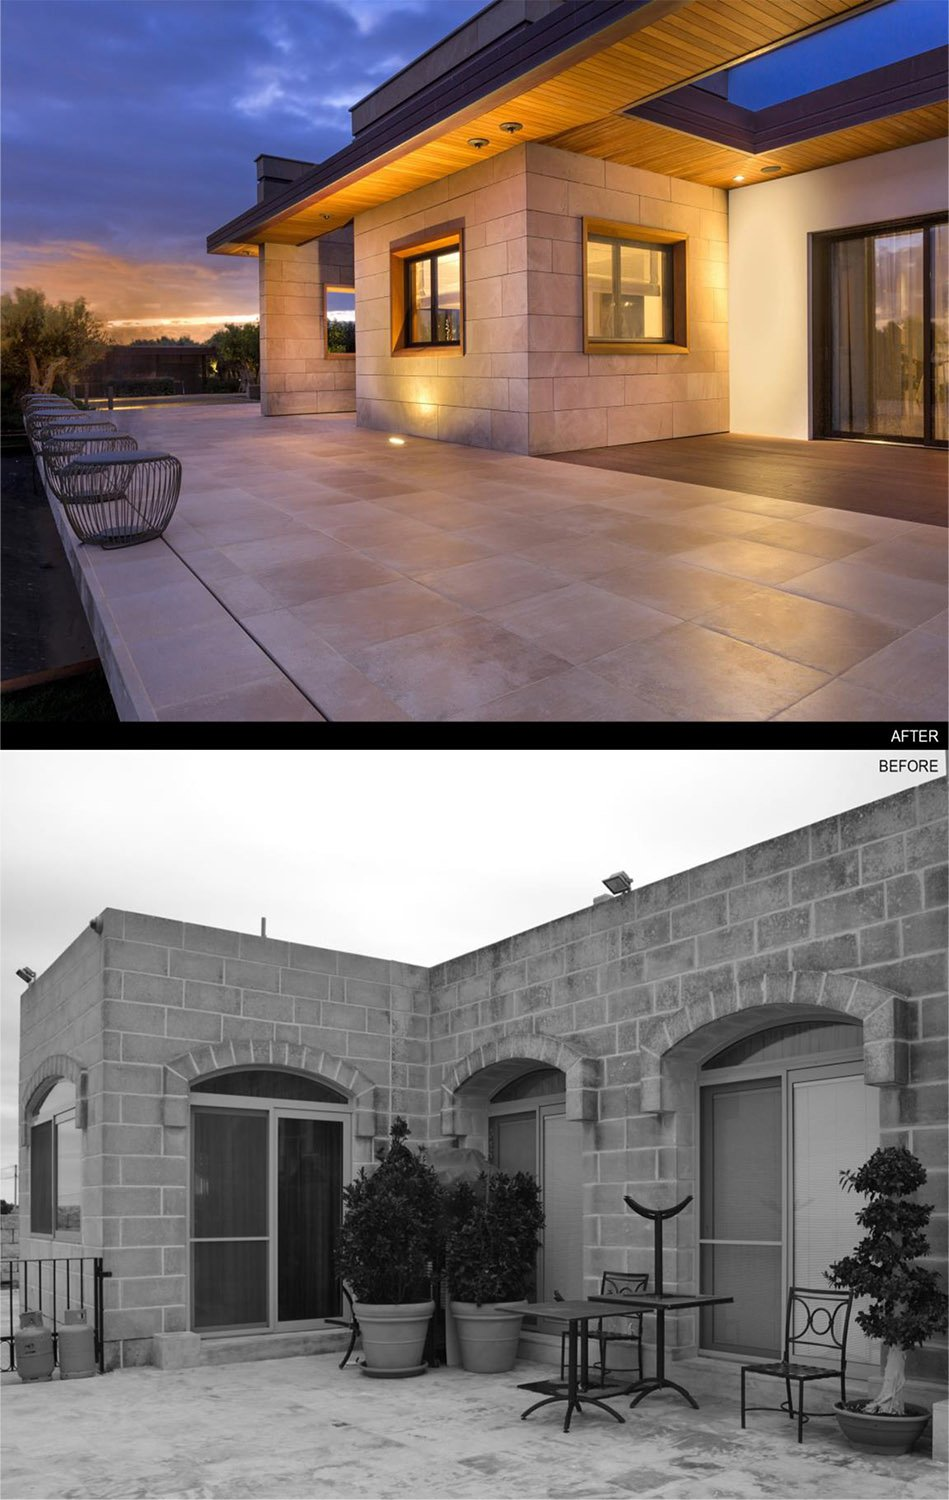 view 2 - before and after PERALTA - design & consulting}